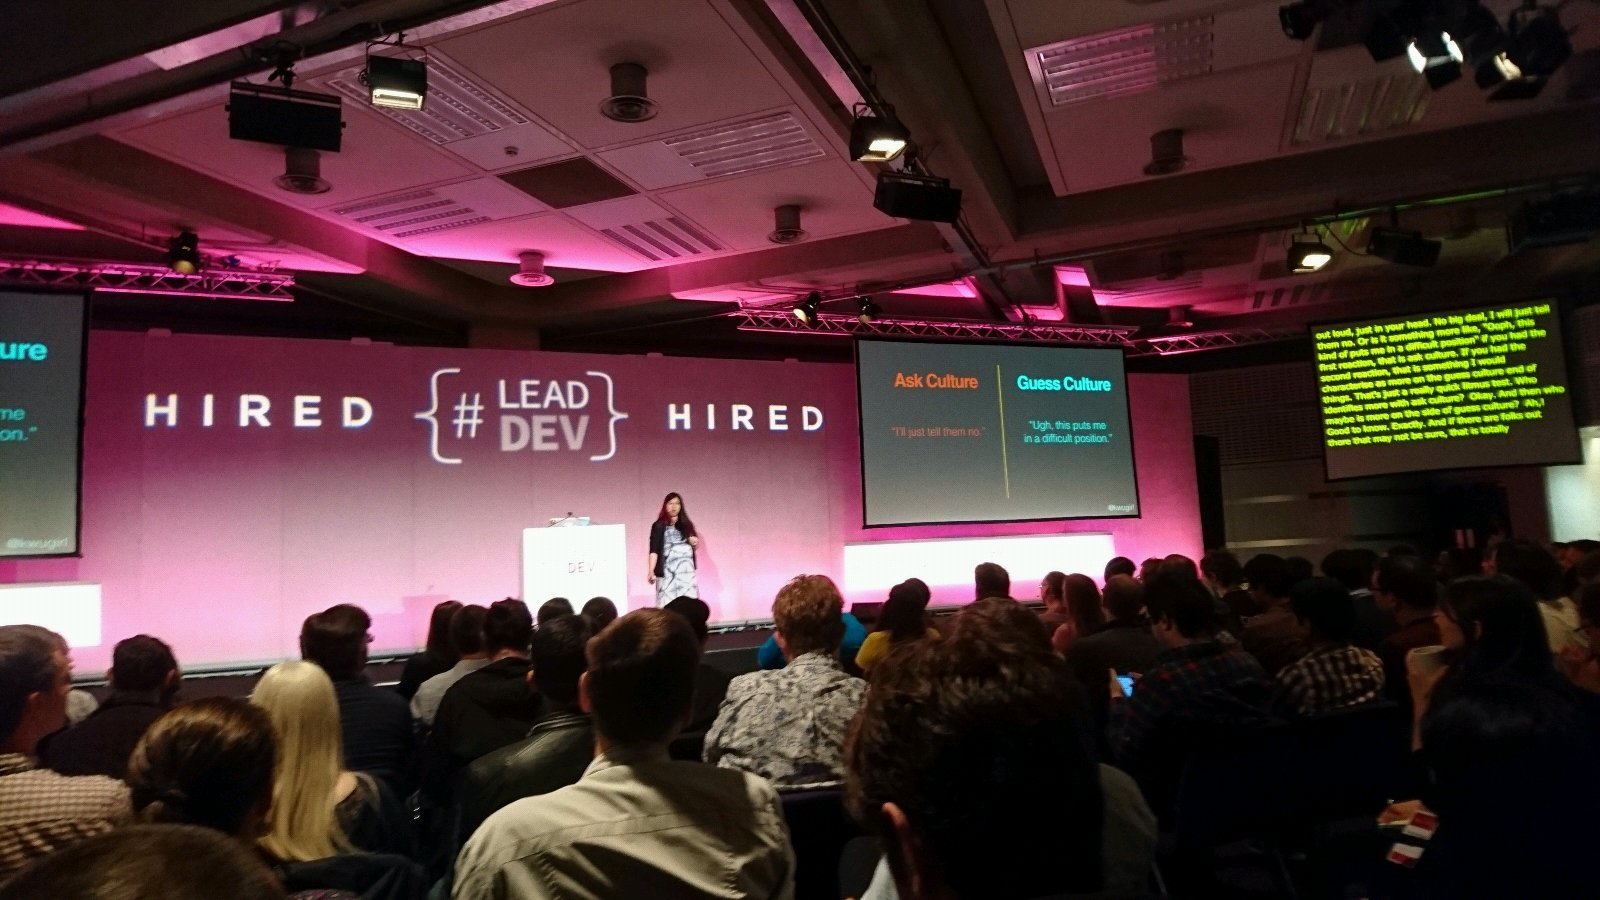 Guess culture. Also known as the Canadian mentality. 🇨🇦  @kwugirl and baby's first speaking gig at #leaddev https://t.co/n0J7yFW2xl